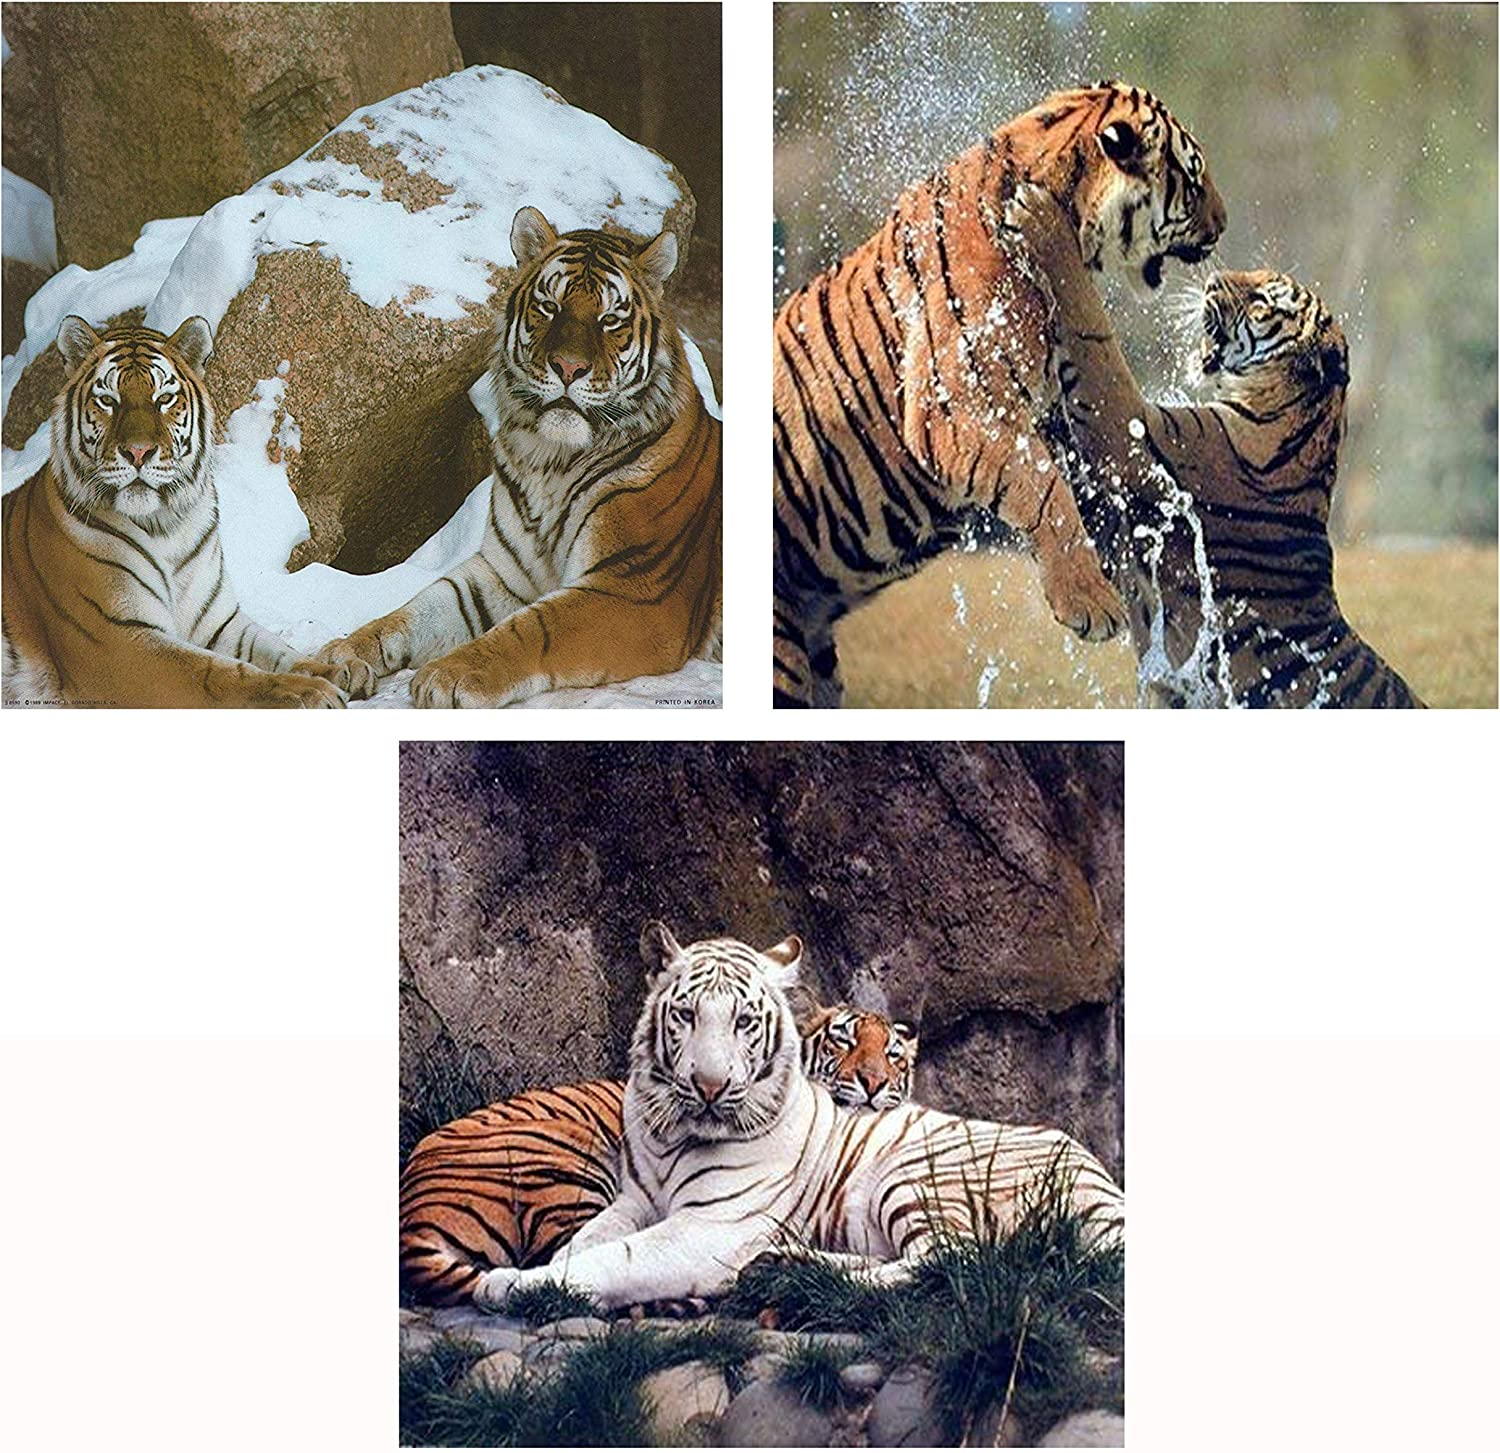 White and Yellow Tigers Wildlife Animal Three Set Picture 8x10 Wall Decor Art Print Posters